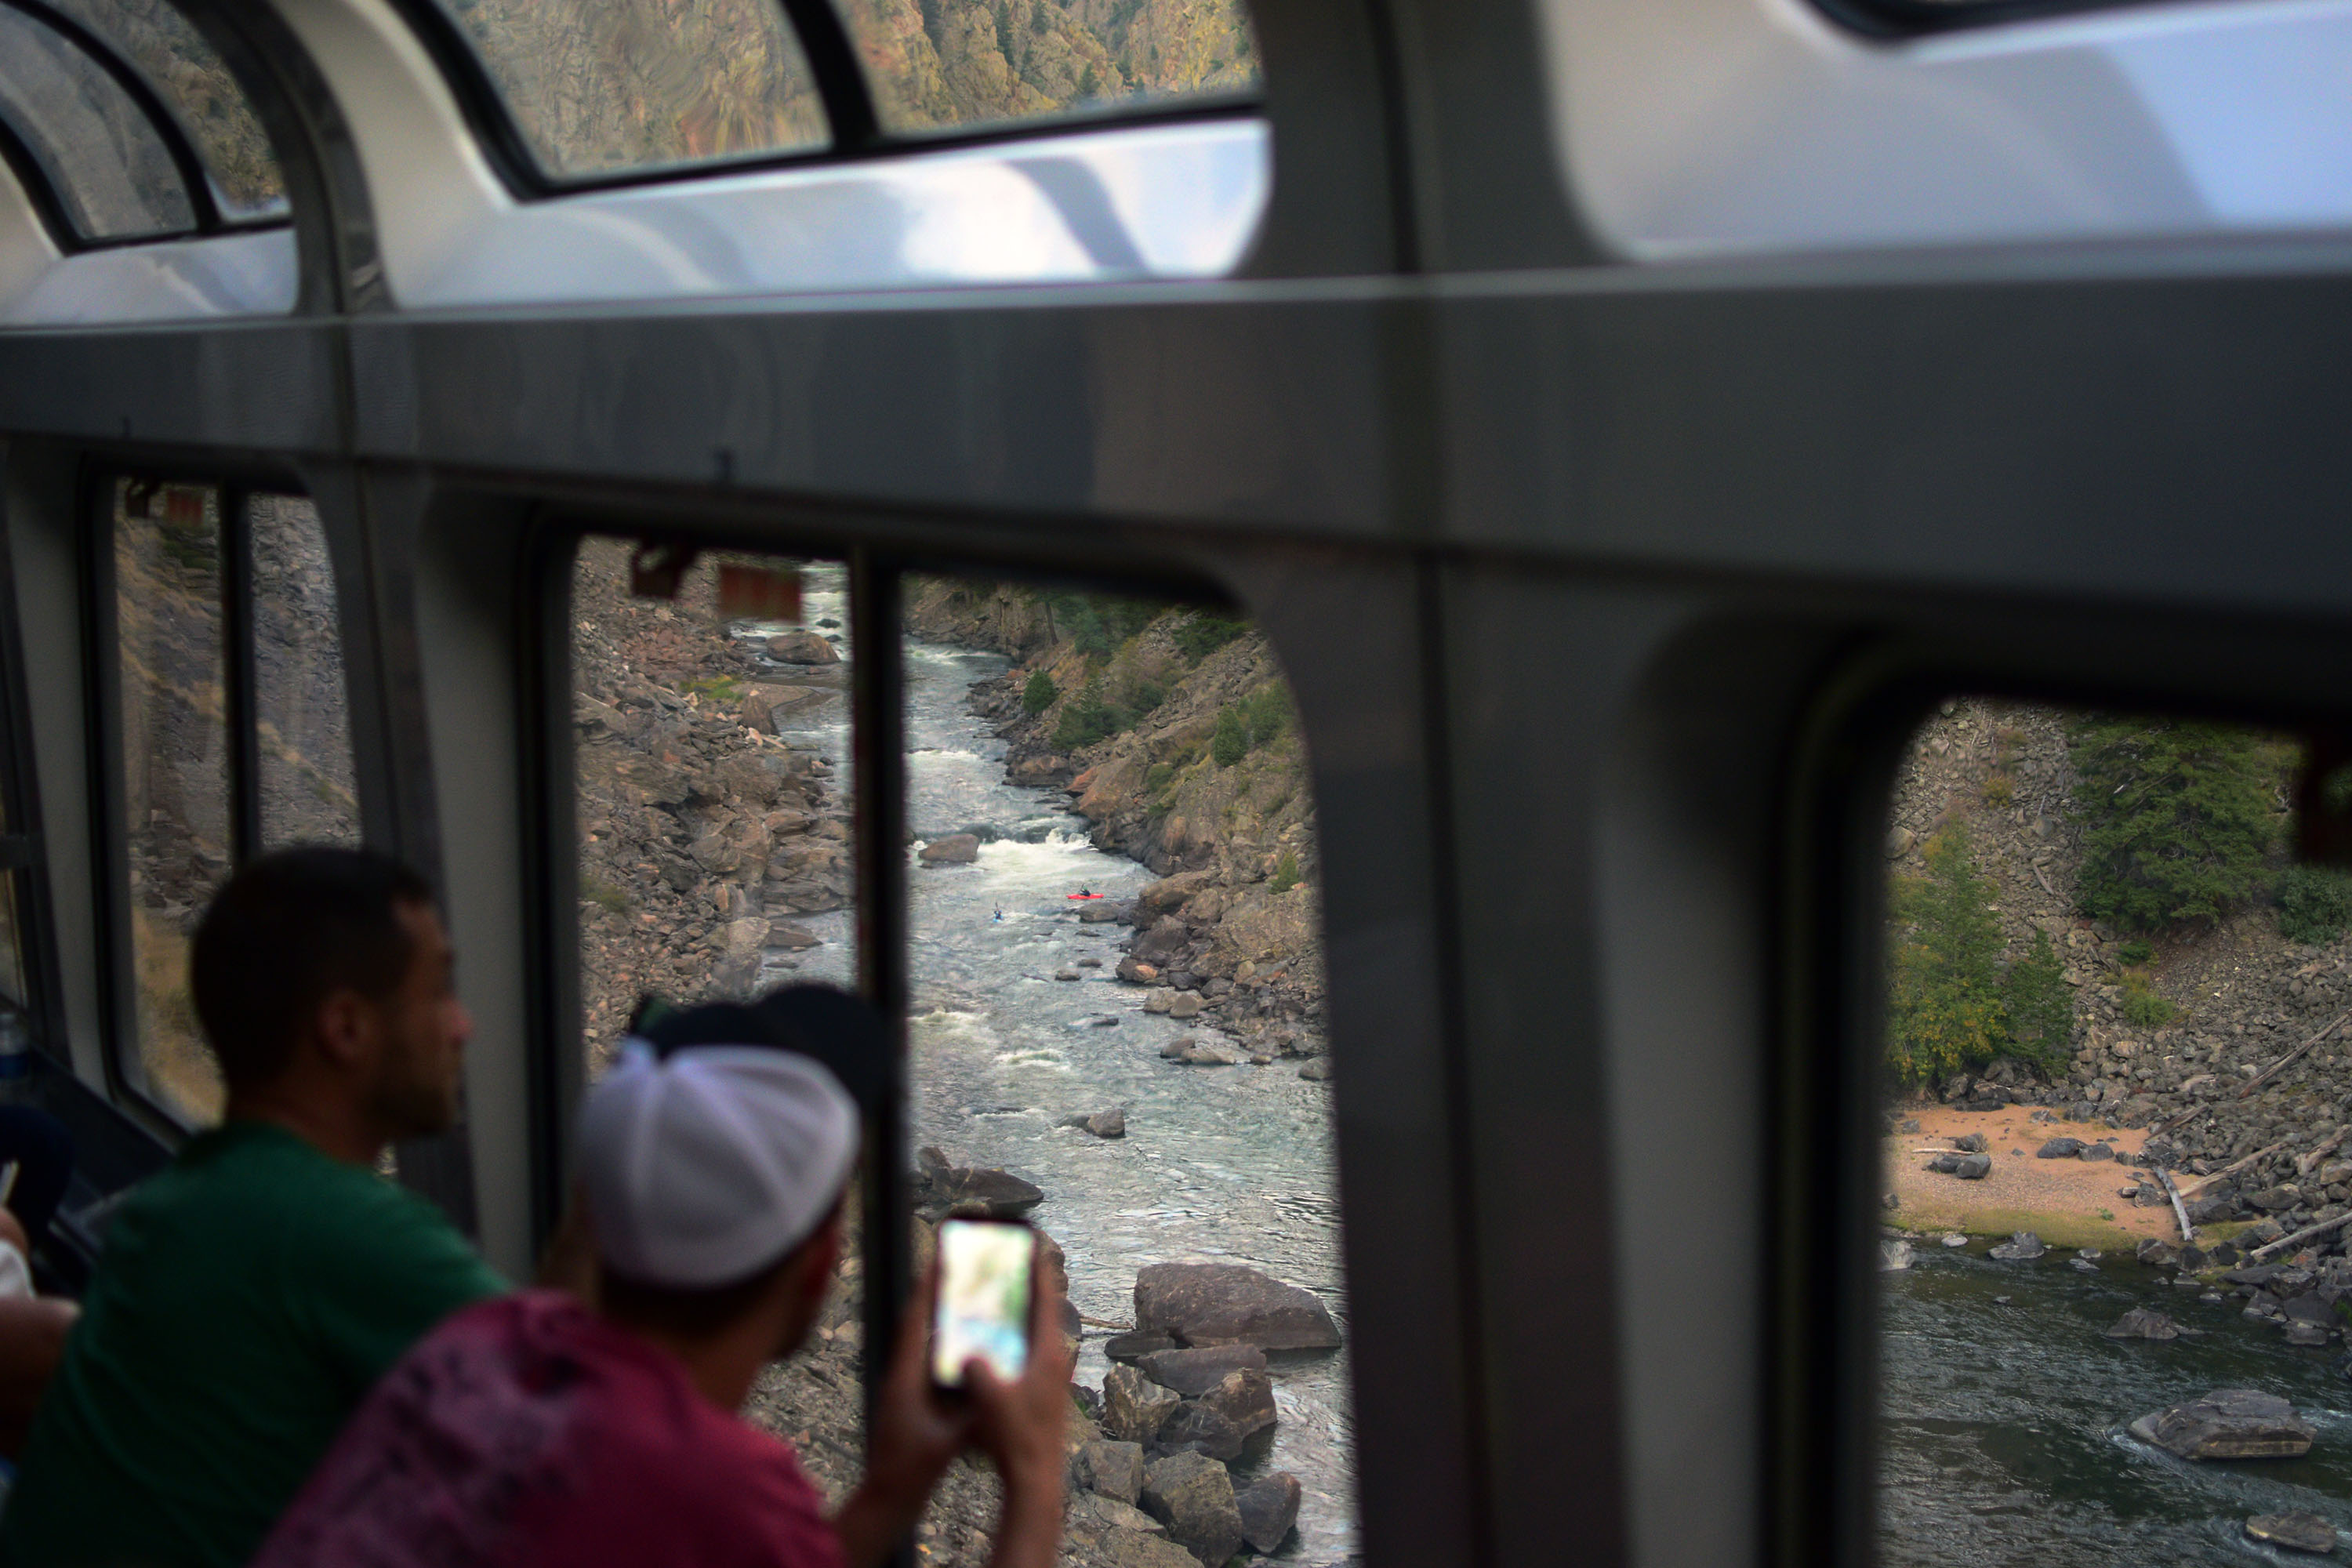 Colorado River whitewater rapids as seen from inside the California Zephyr observation car